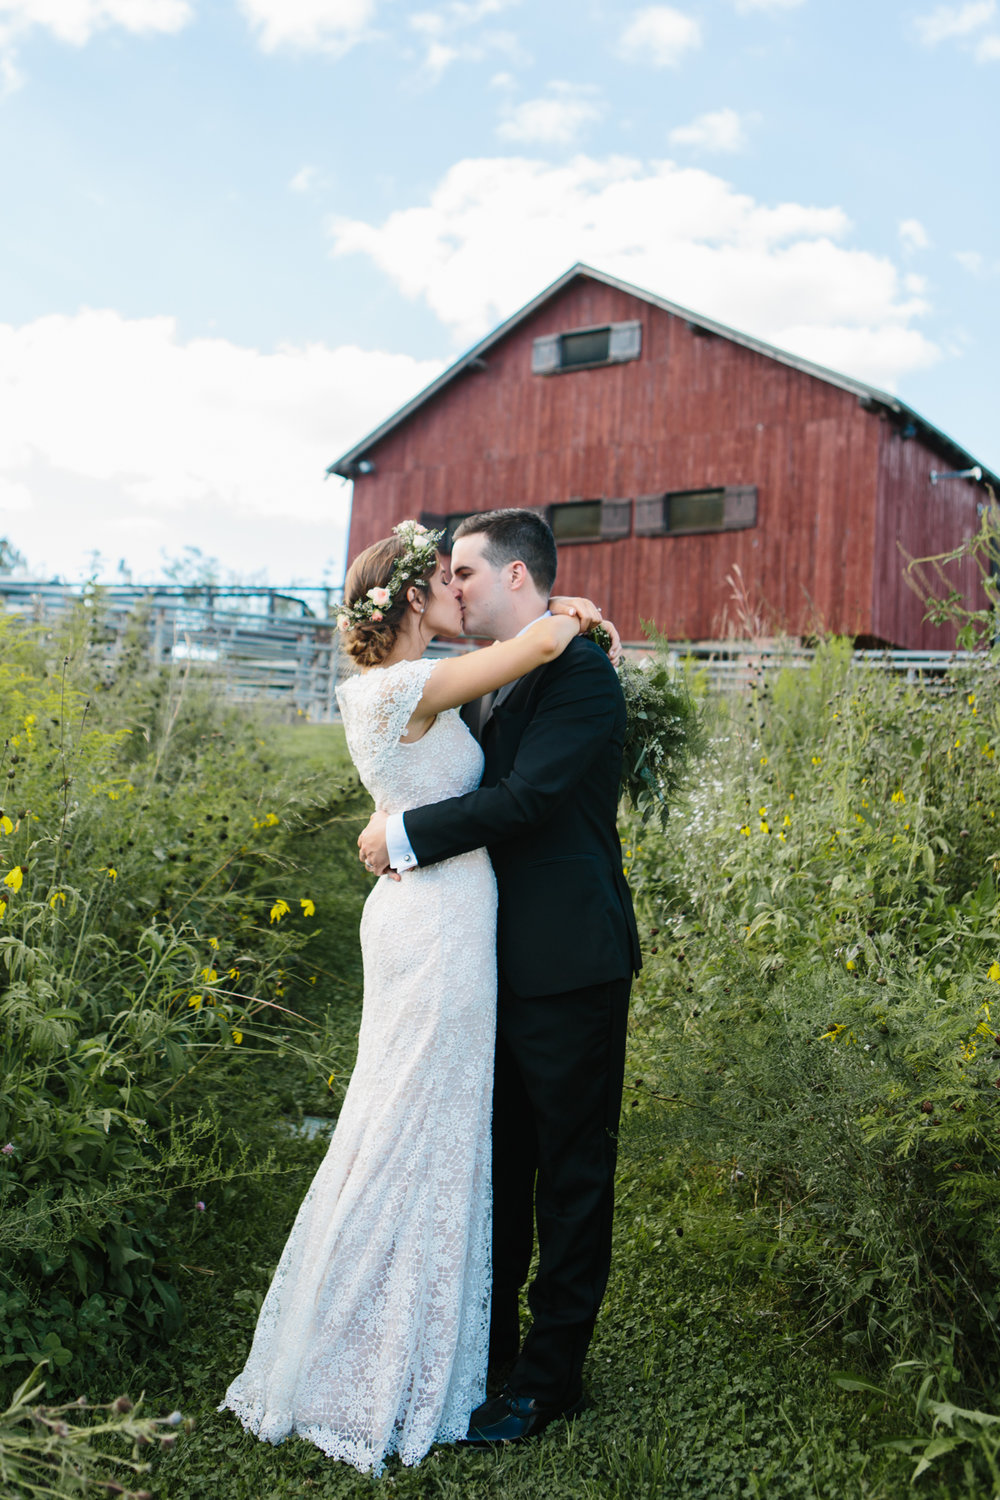 Photography from Lidia and Bryan's wedding at Trader's Point Creamery in Indianapolis, Indiana.